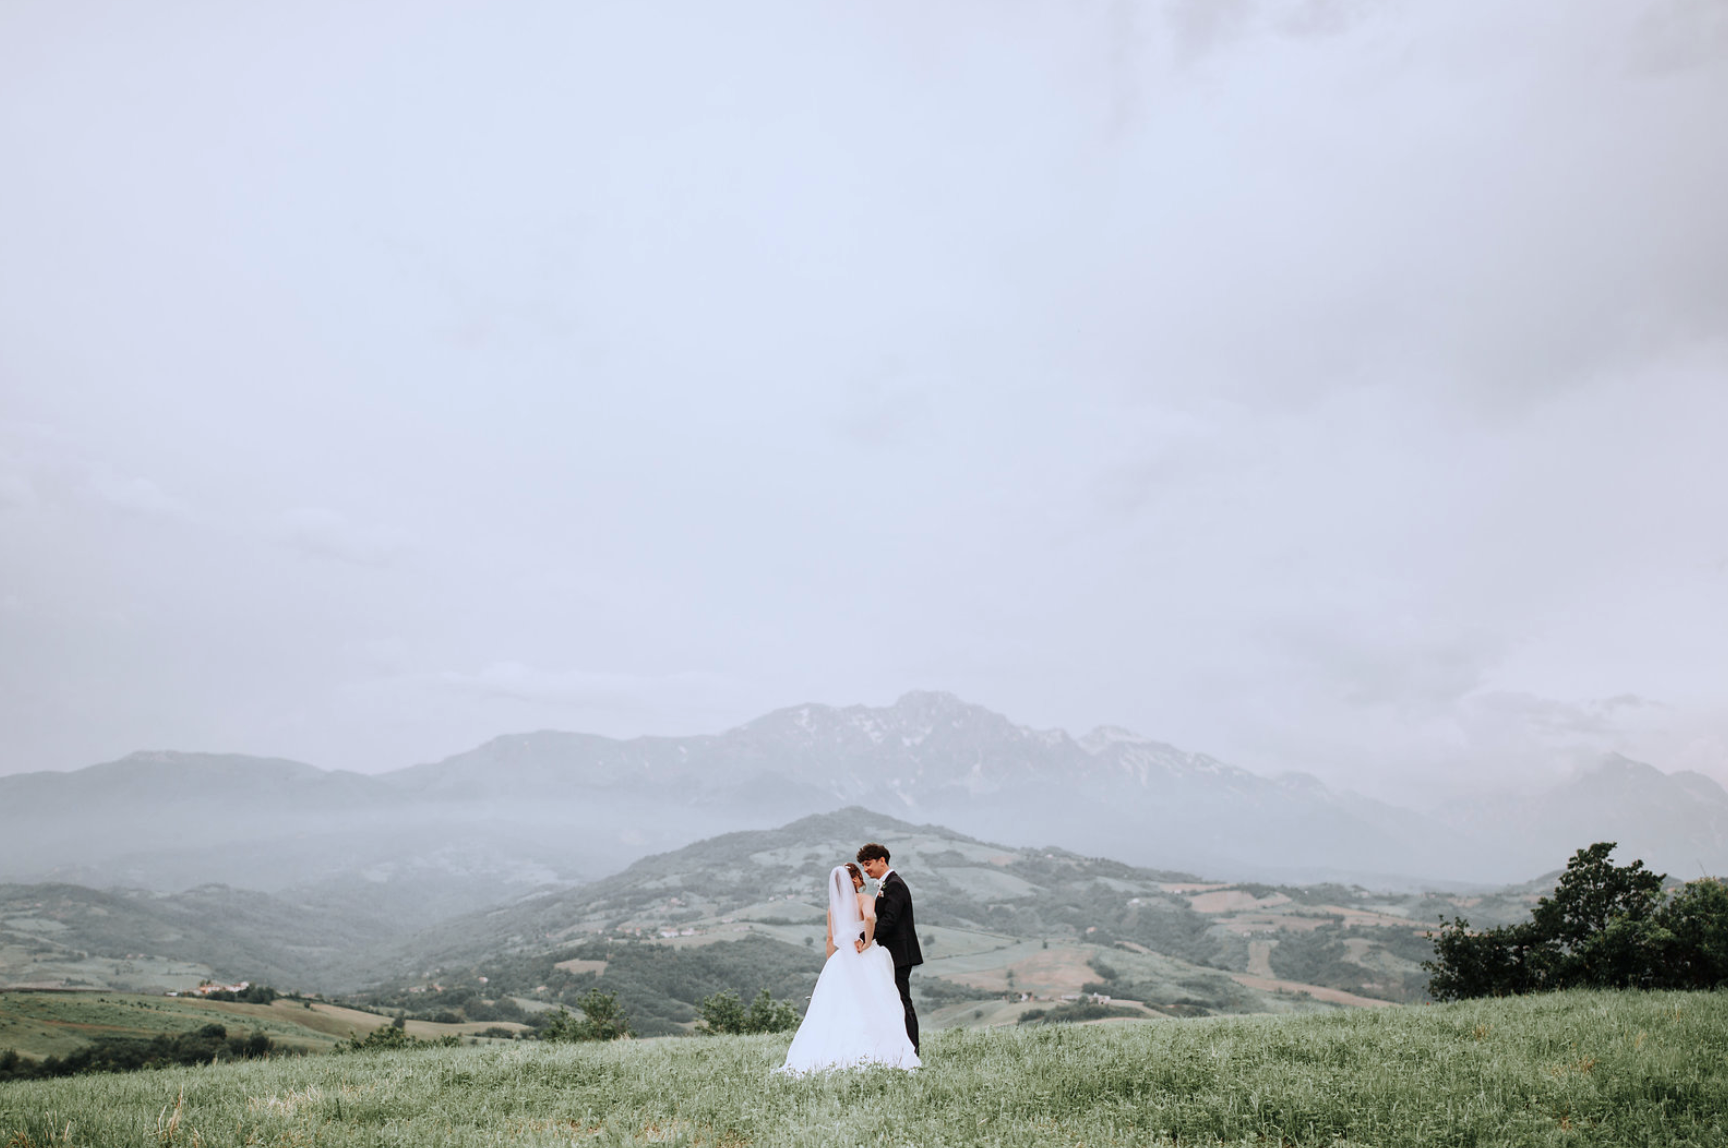 Sam + Emily | Abruzzo, Italy | Private Home